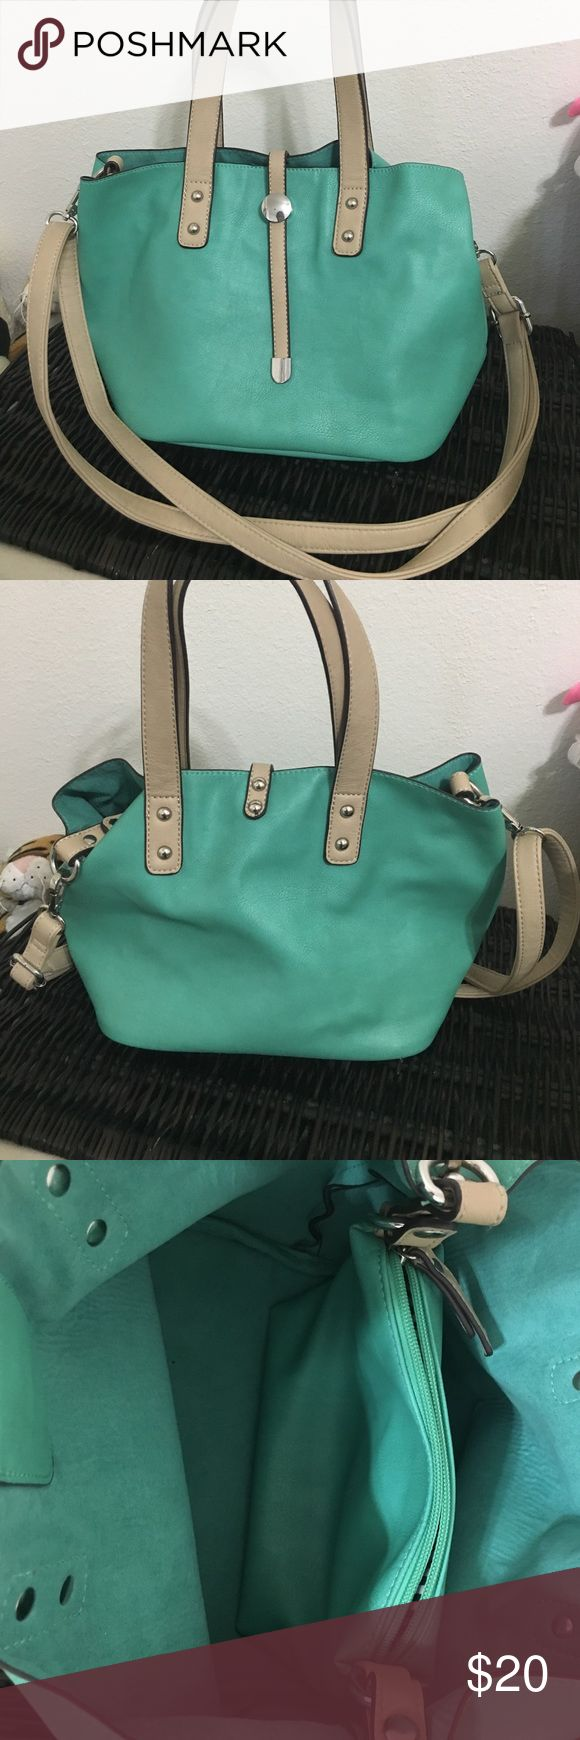 Charming Charlie aquamarine 2 in 1 handbag With this bag you get two bags for the price of one!! Beautiful bright color!! Small pouch that can be used as a crossbody for on the go. Or keep it inside for extra controlled storage for smaller items. Bags Crossbody Bags